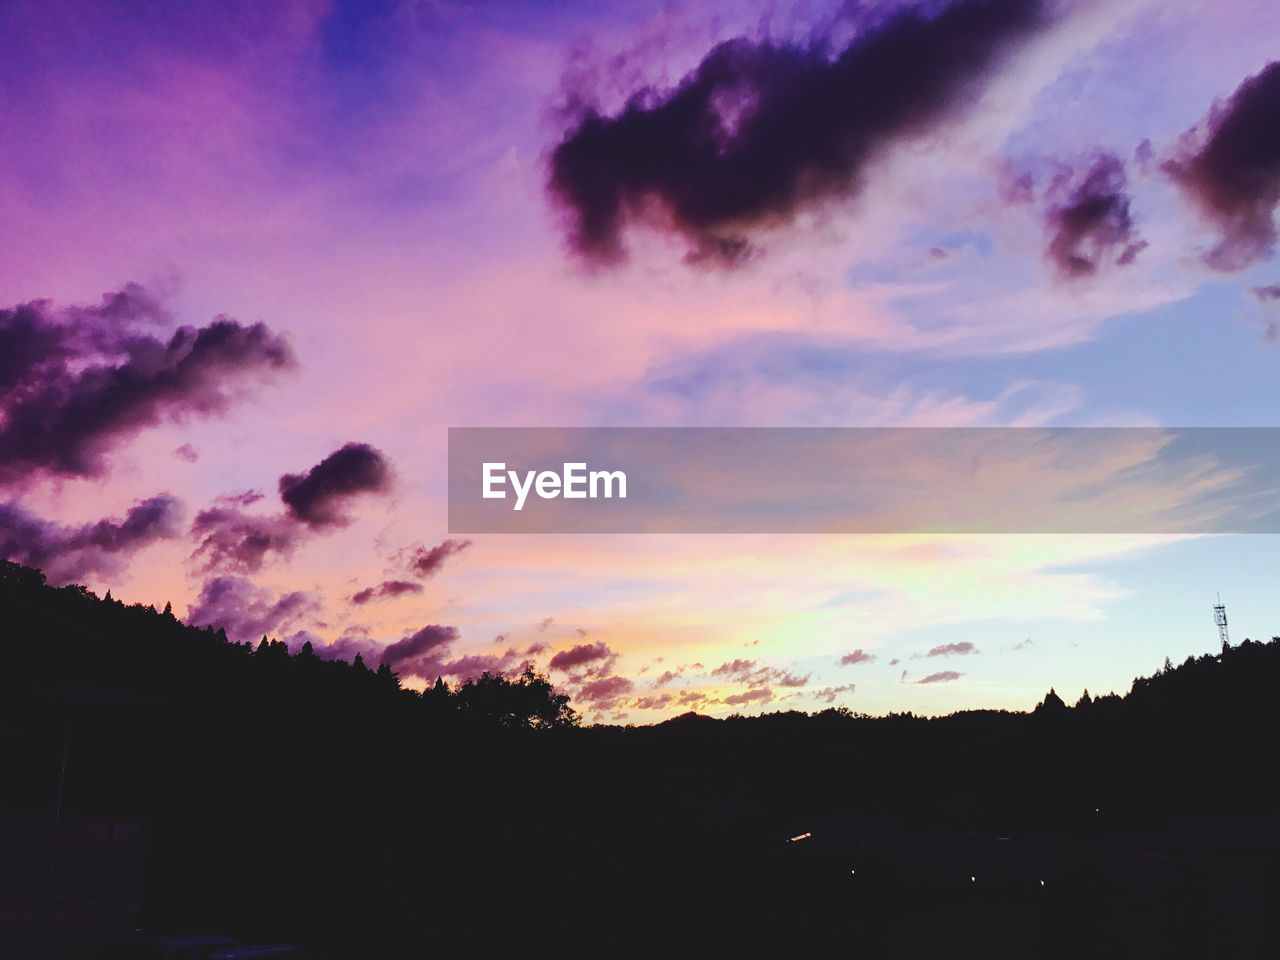 sky, cloud - sky, sunset, silhouette, beauty in nature, scenics - nature, tranquility, tranquil scene, nature, no people, tree, dramatic sky, environment, outdoors, landscape, idyllic, orange color, low angle view, dusk, non-urban scene, purple, romantic sky